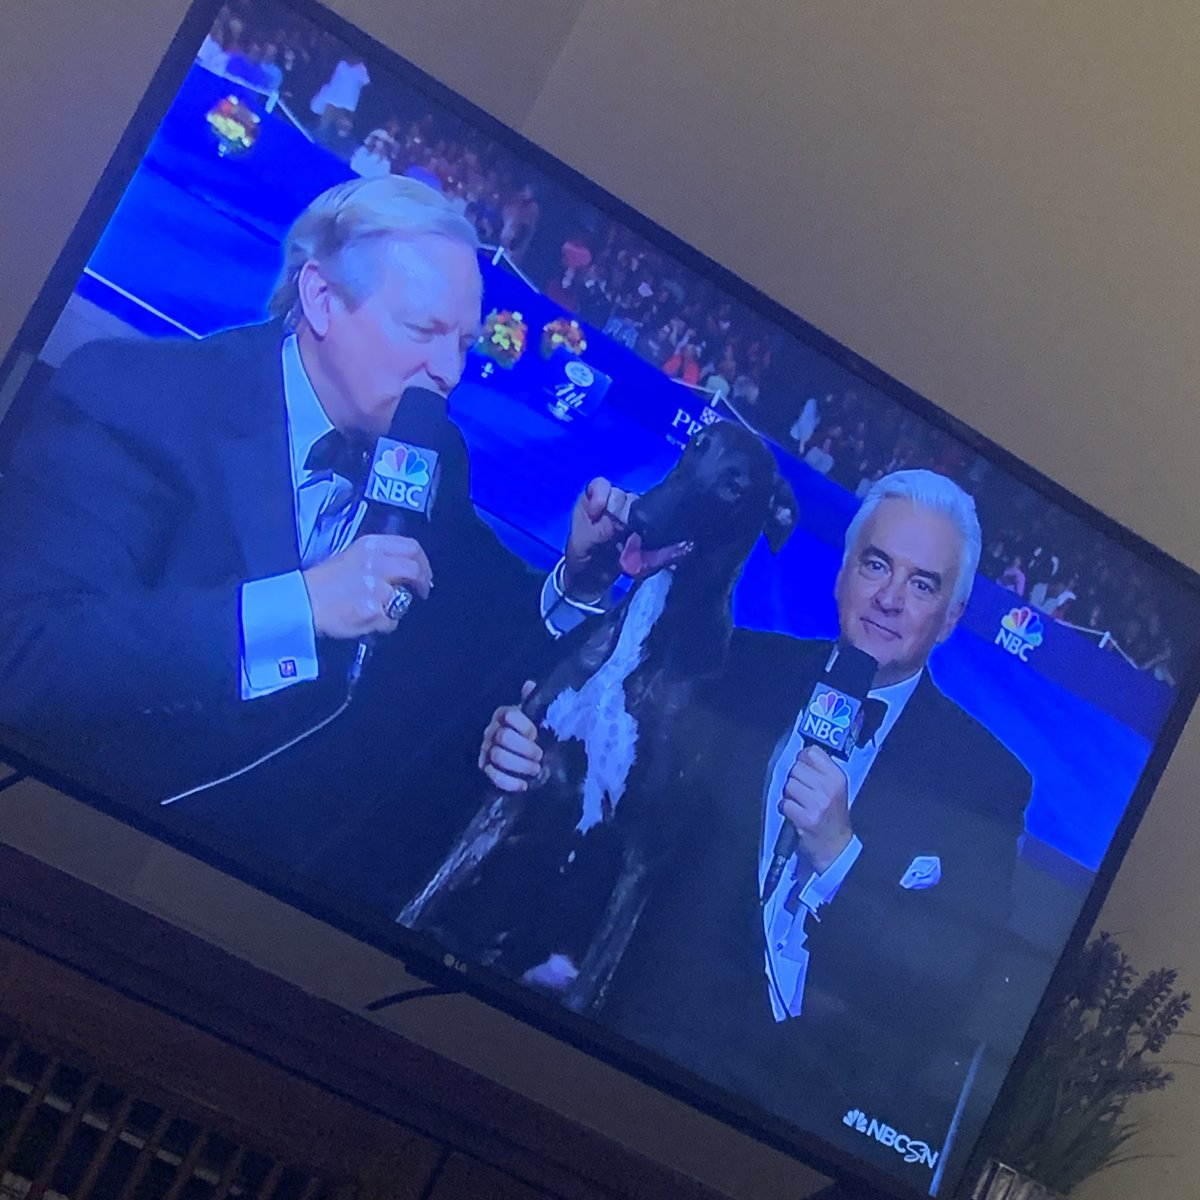 I was today years old when I found out Mr. Peterman is the ACTUAL HOST of the #NationalDogShow